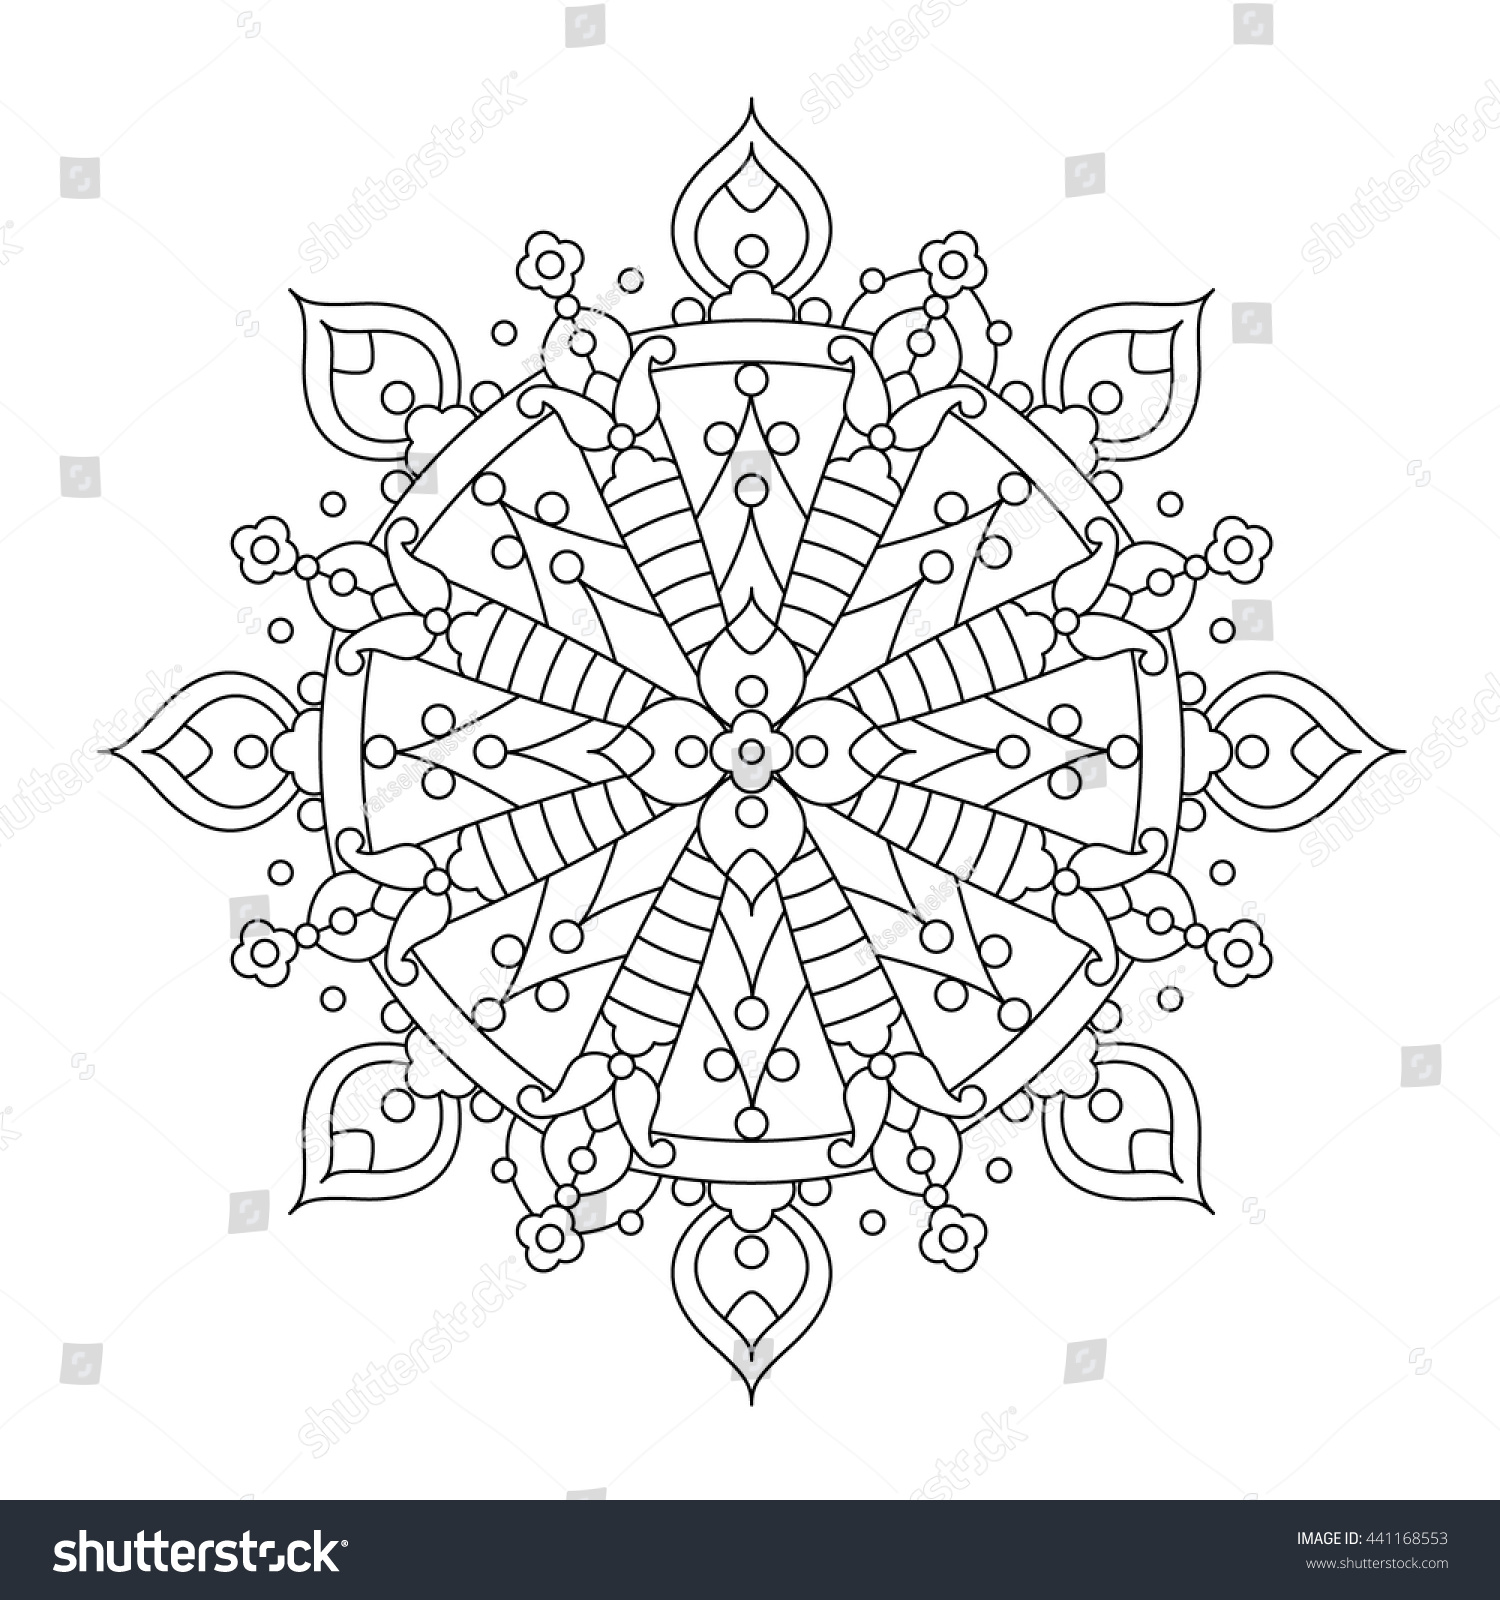 Whimsical designs coloring book - Abstract Mandala Or Whimsical Snowflake Line Art Design Or Coloring Page